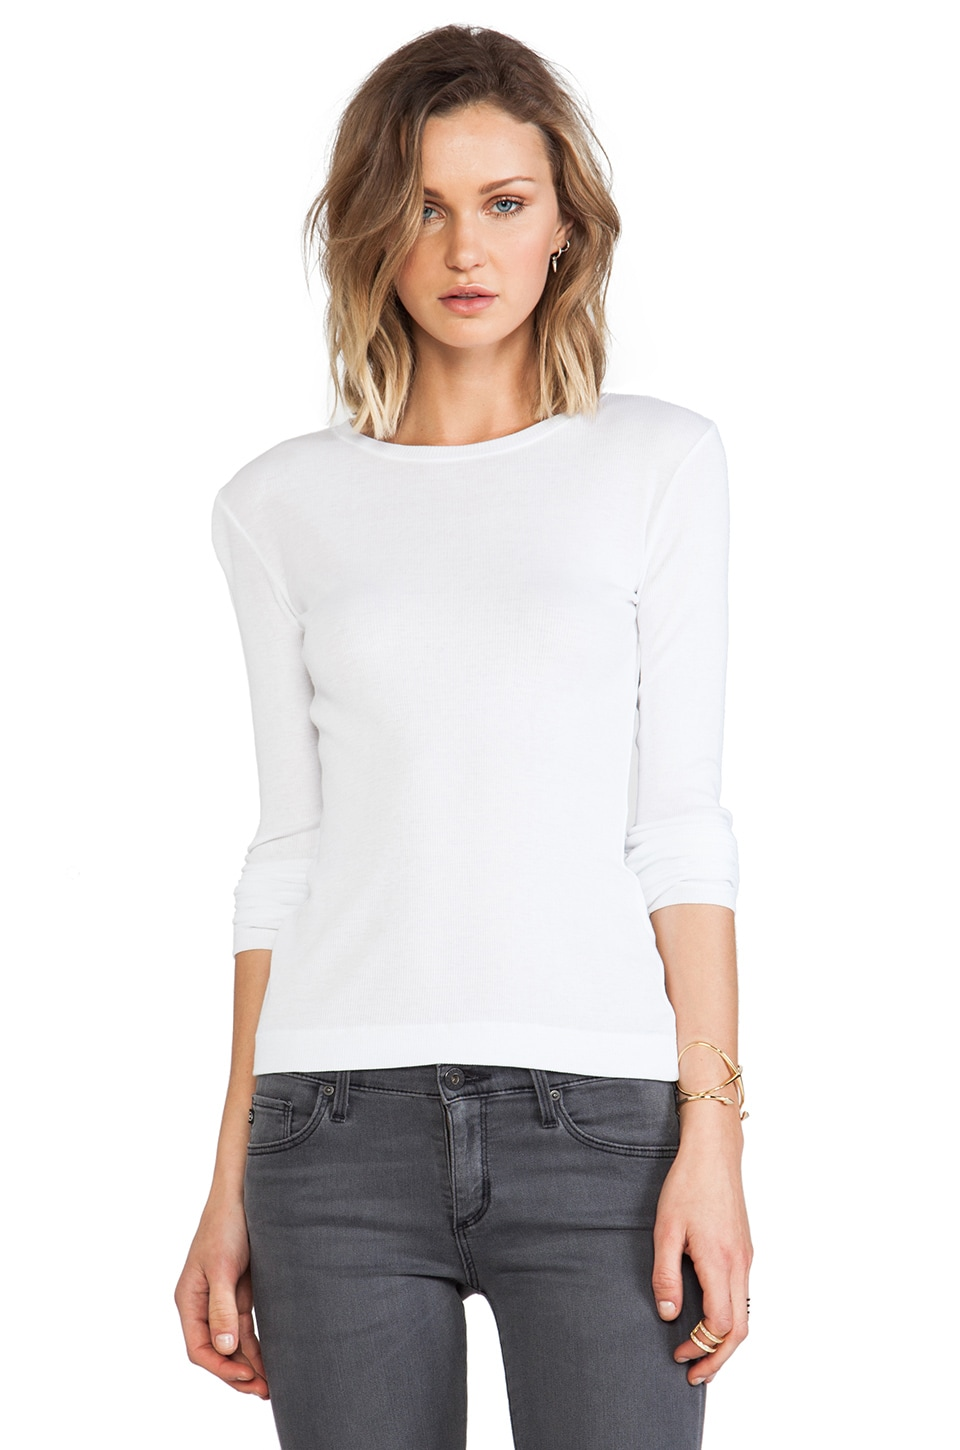 Theory Kanitta Long Sleeve Tee in White